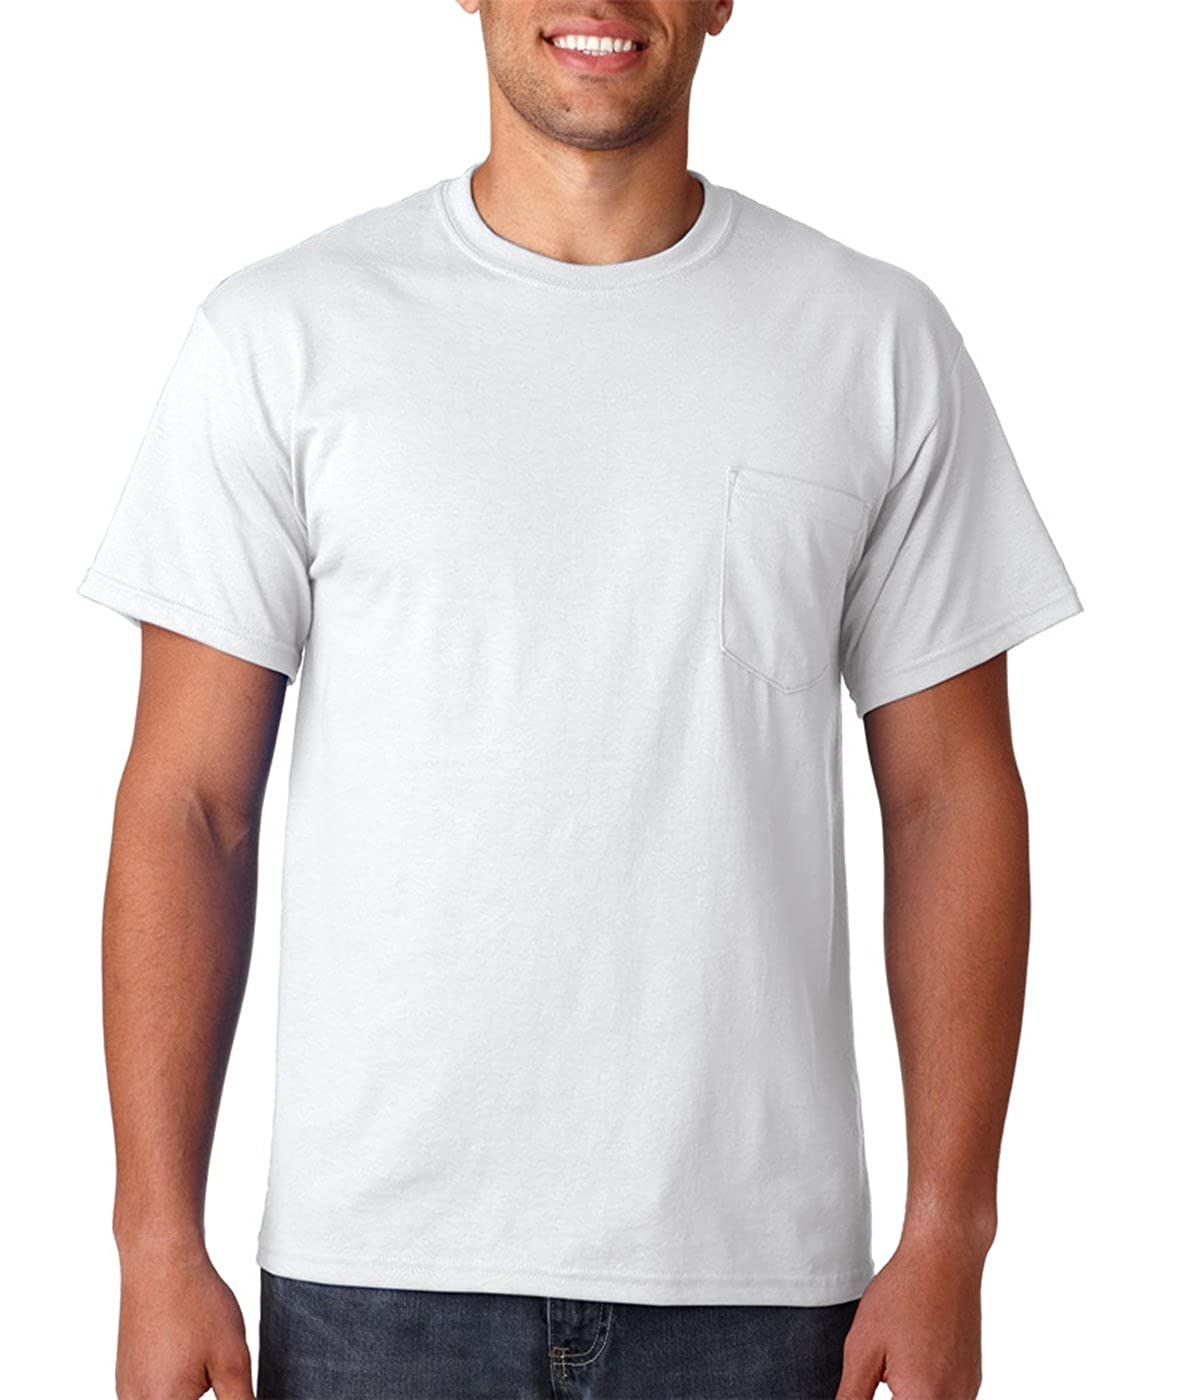 d8d16a693e7a Gildan Mens DryBlend 5.6 oz 50/50 Pocket T-Shirt G830 -WHITE XL at Amazon Men's  Clothing store: